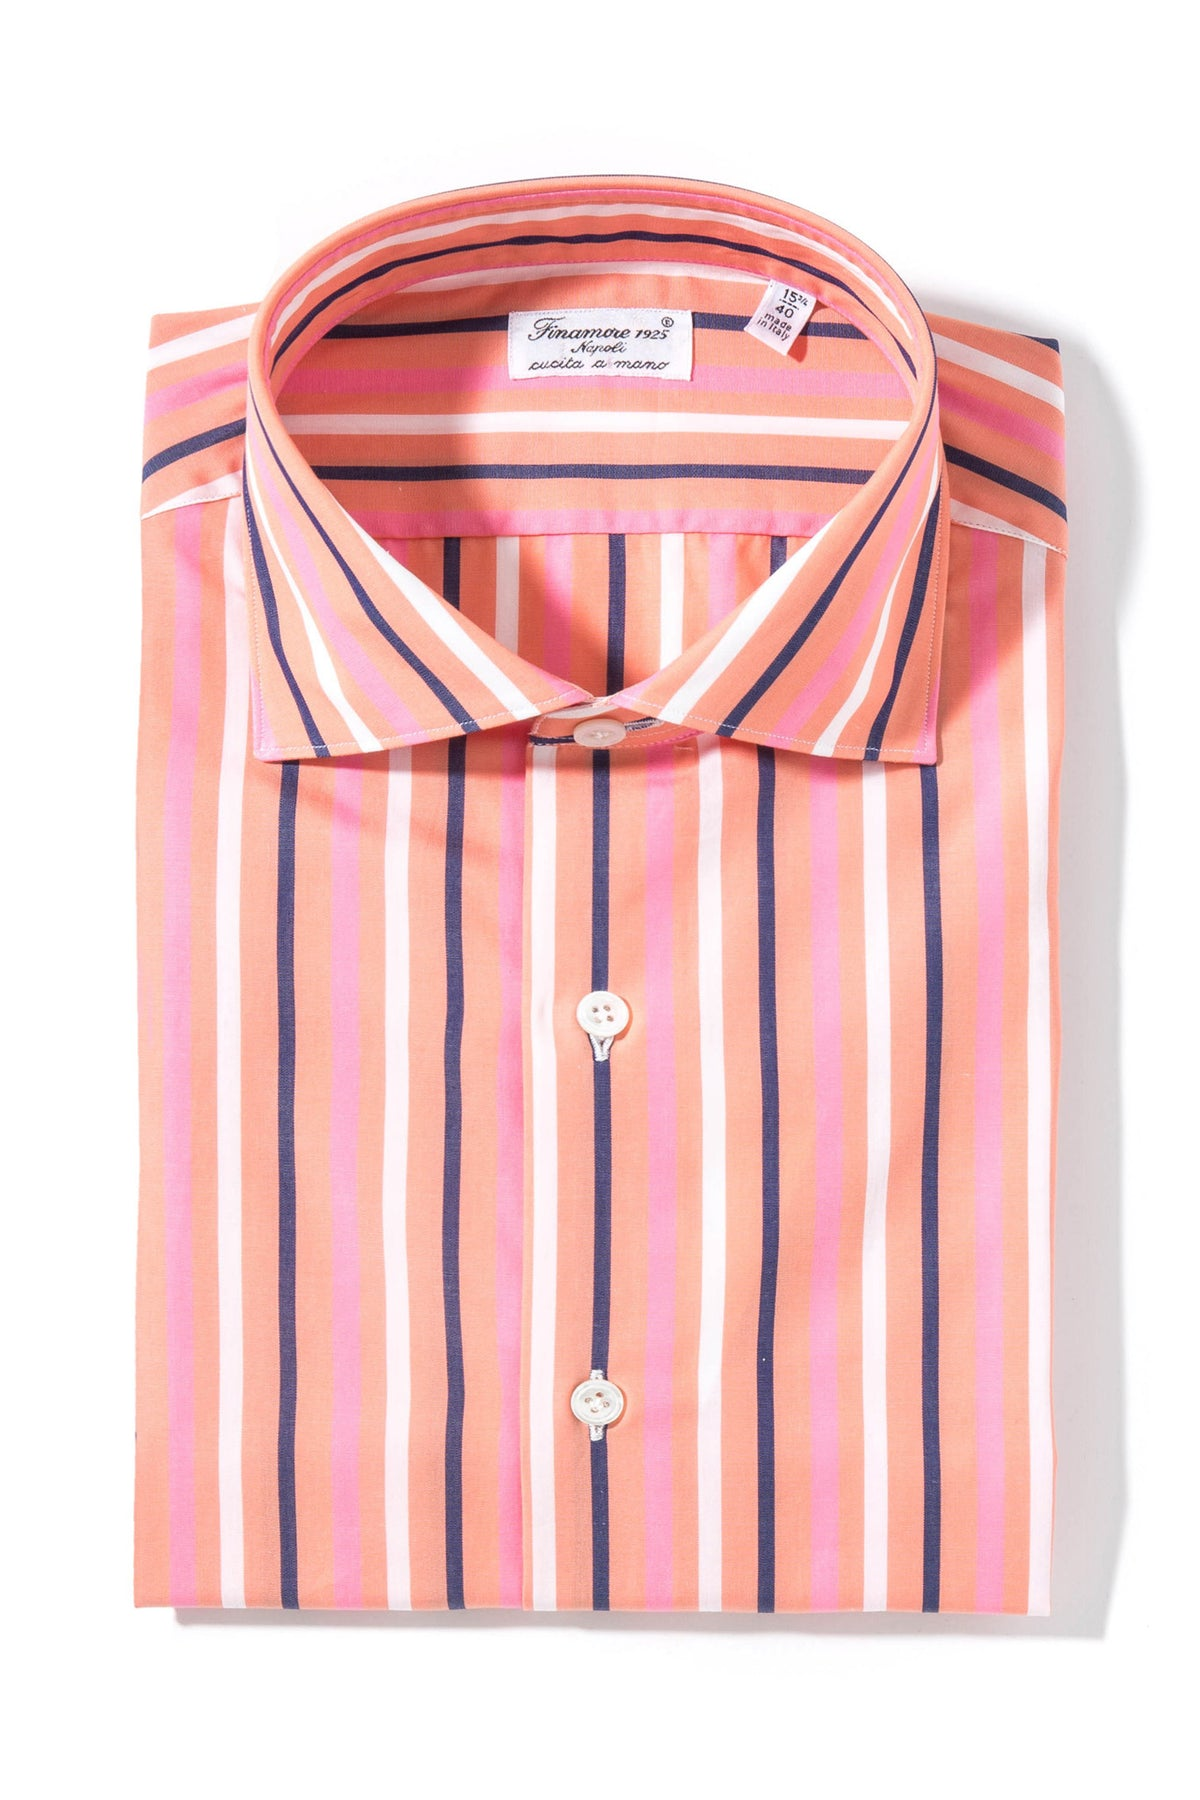 Finamore Orfeo Dress Shirt (1947951890525)